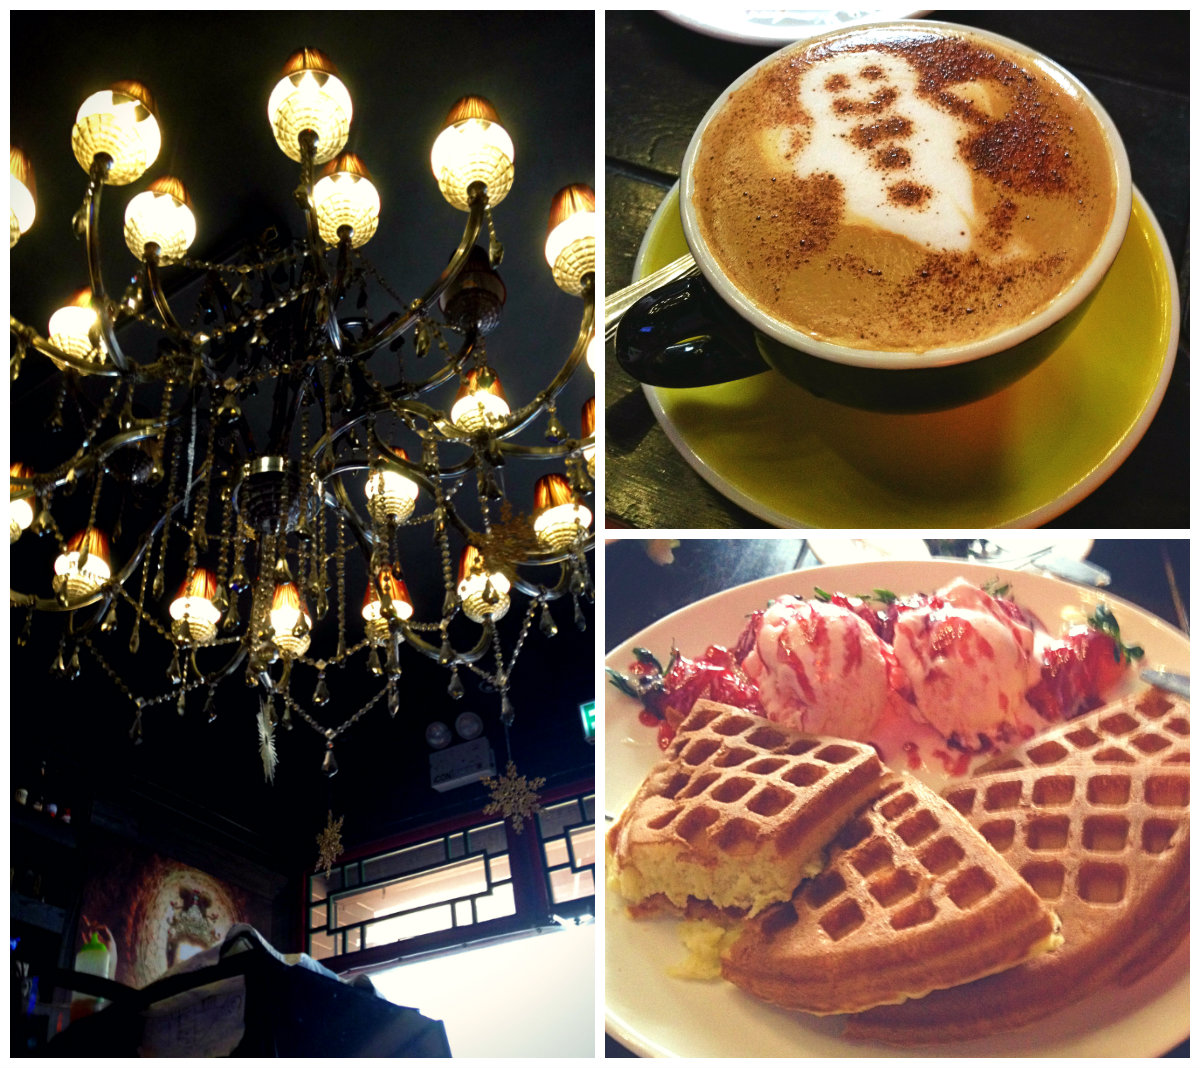 yiweilim, yi wei lim, yiwei lim, yiwei lim blog, take a break cafe, take a break cafe prince edward, strawberry waffles, waffles, latte, gingerbread latte, prince edward, hong kong, kowloon